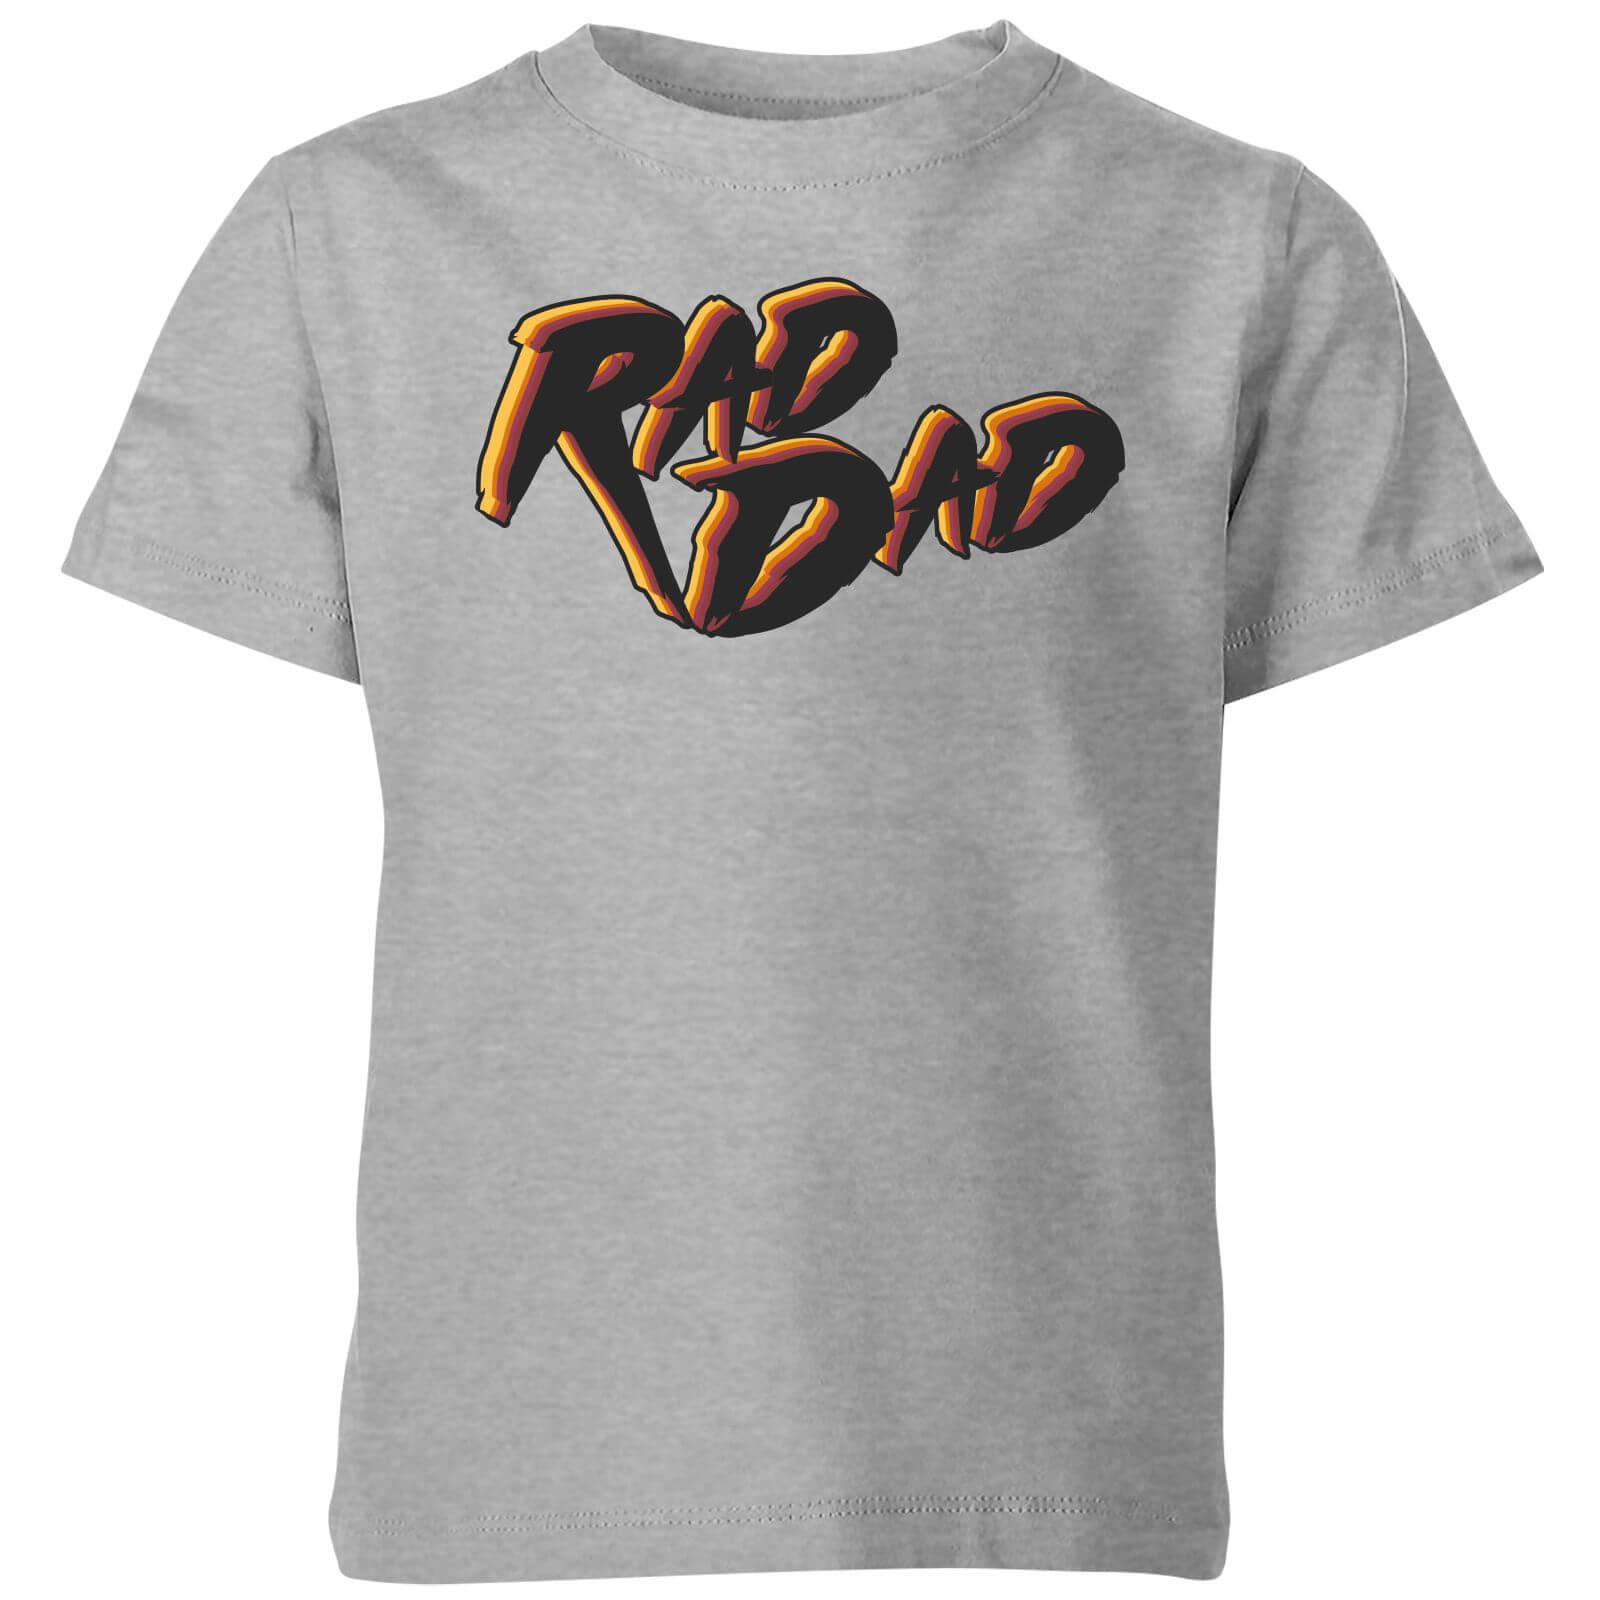 Rad Dad Kids